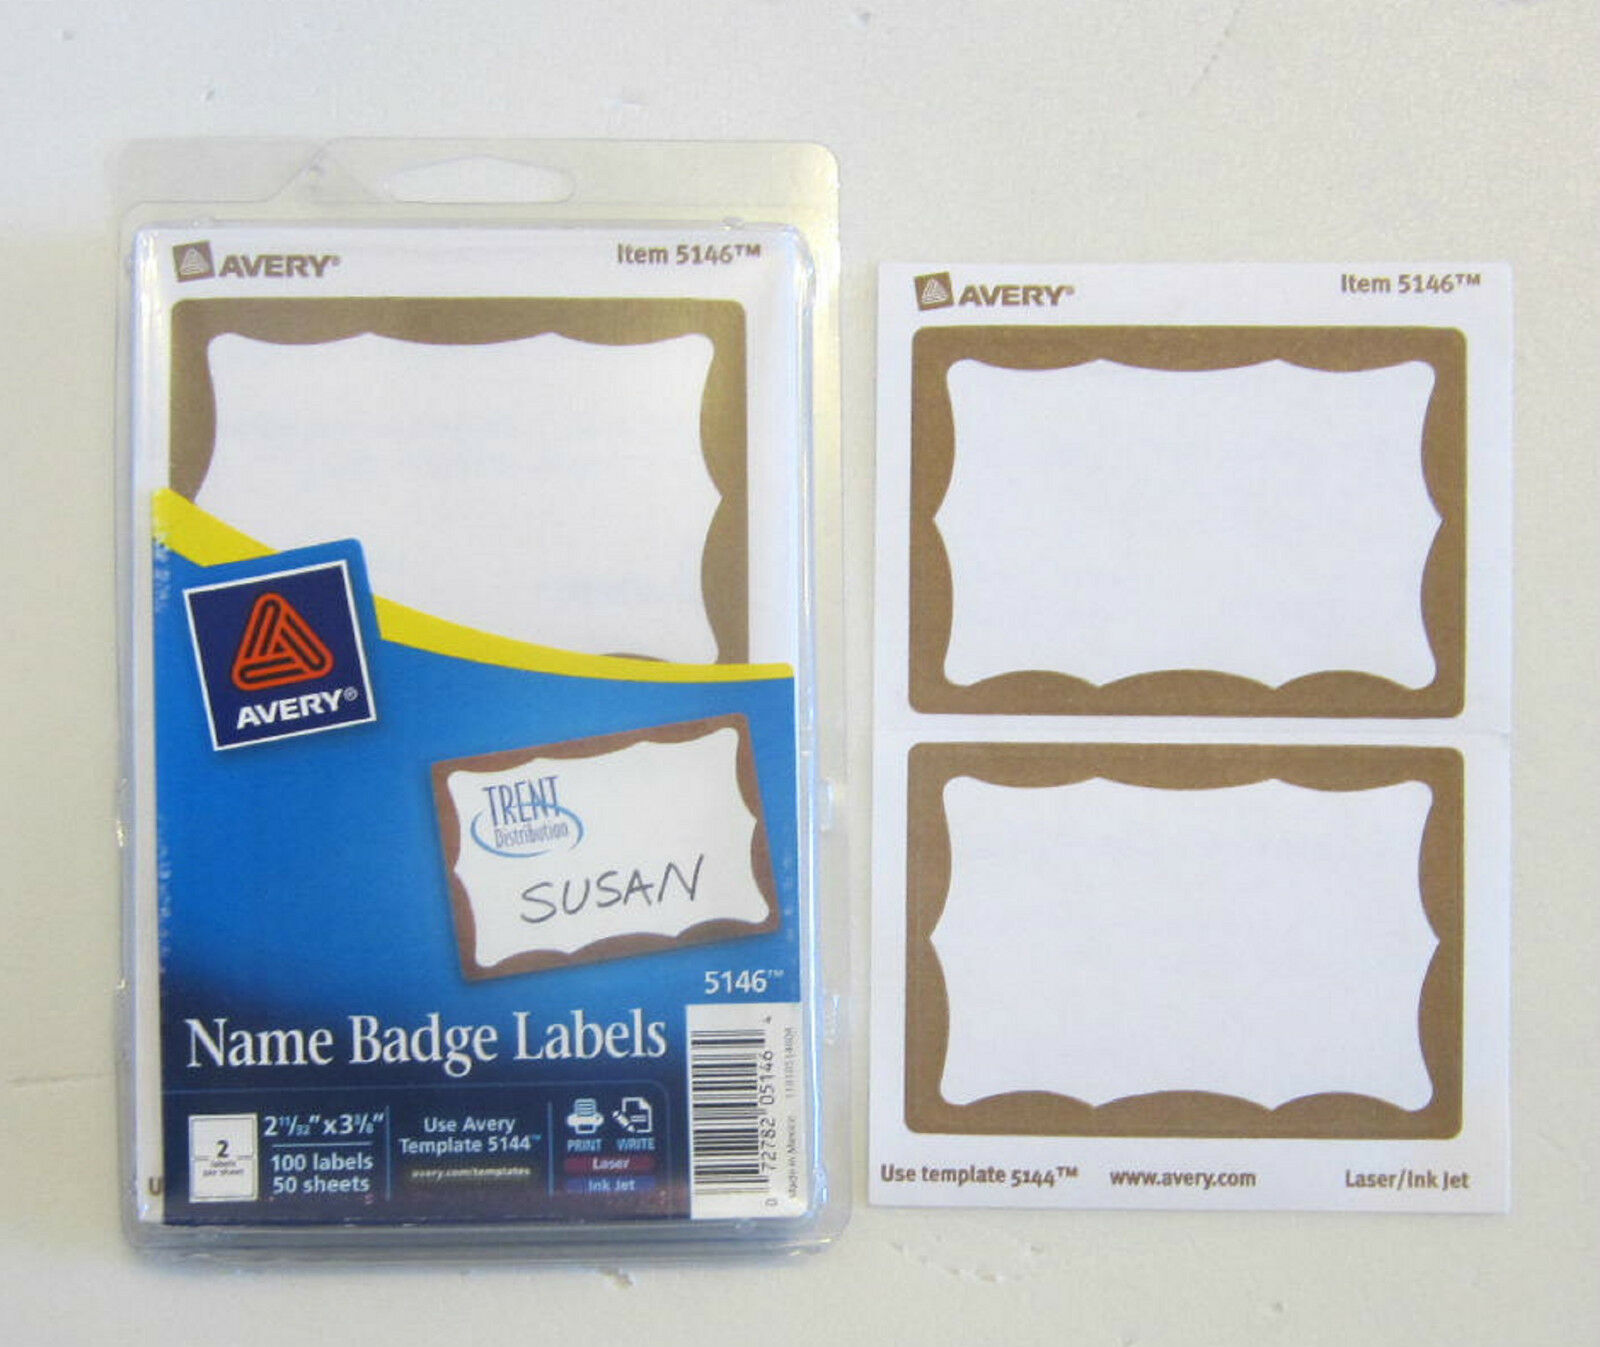 2000 AVERY DENNISON gold BORDER BADGES NAME TAGS ID LABELS ADHESIVE PEEL LABEL